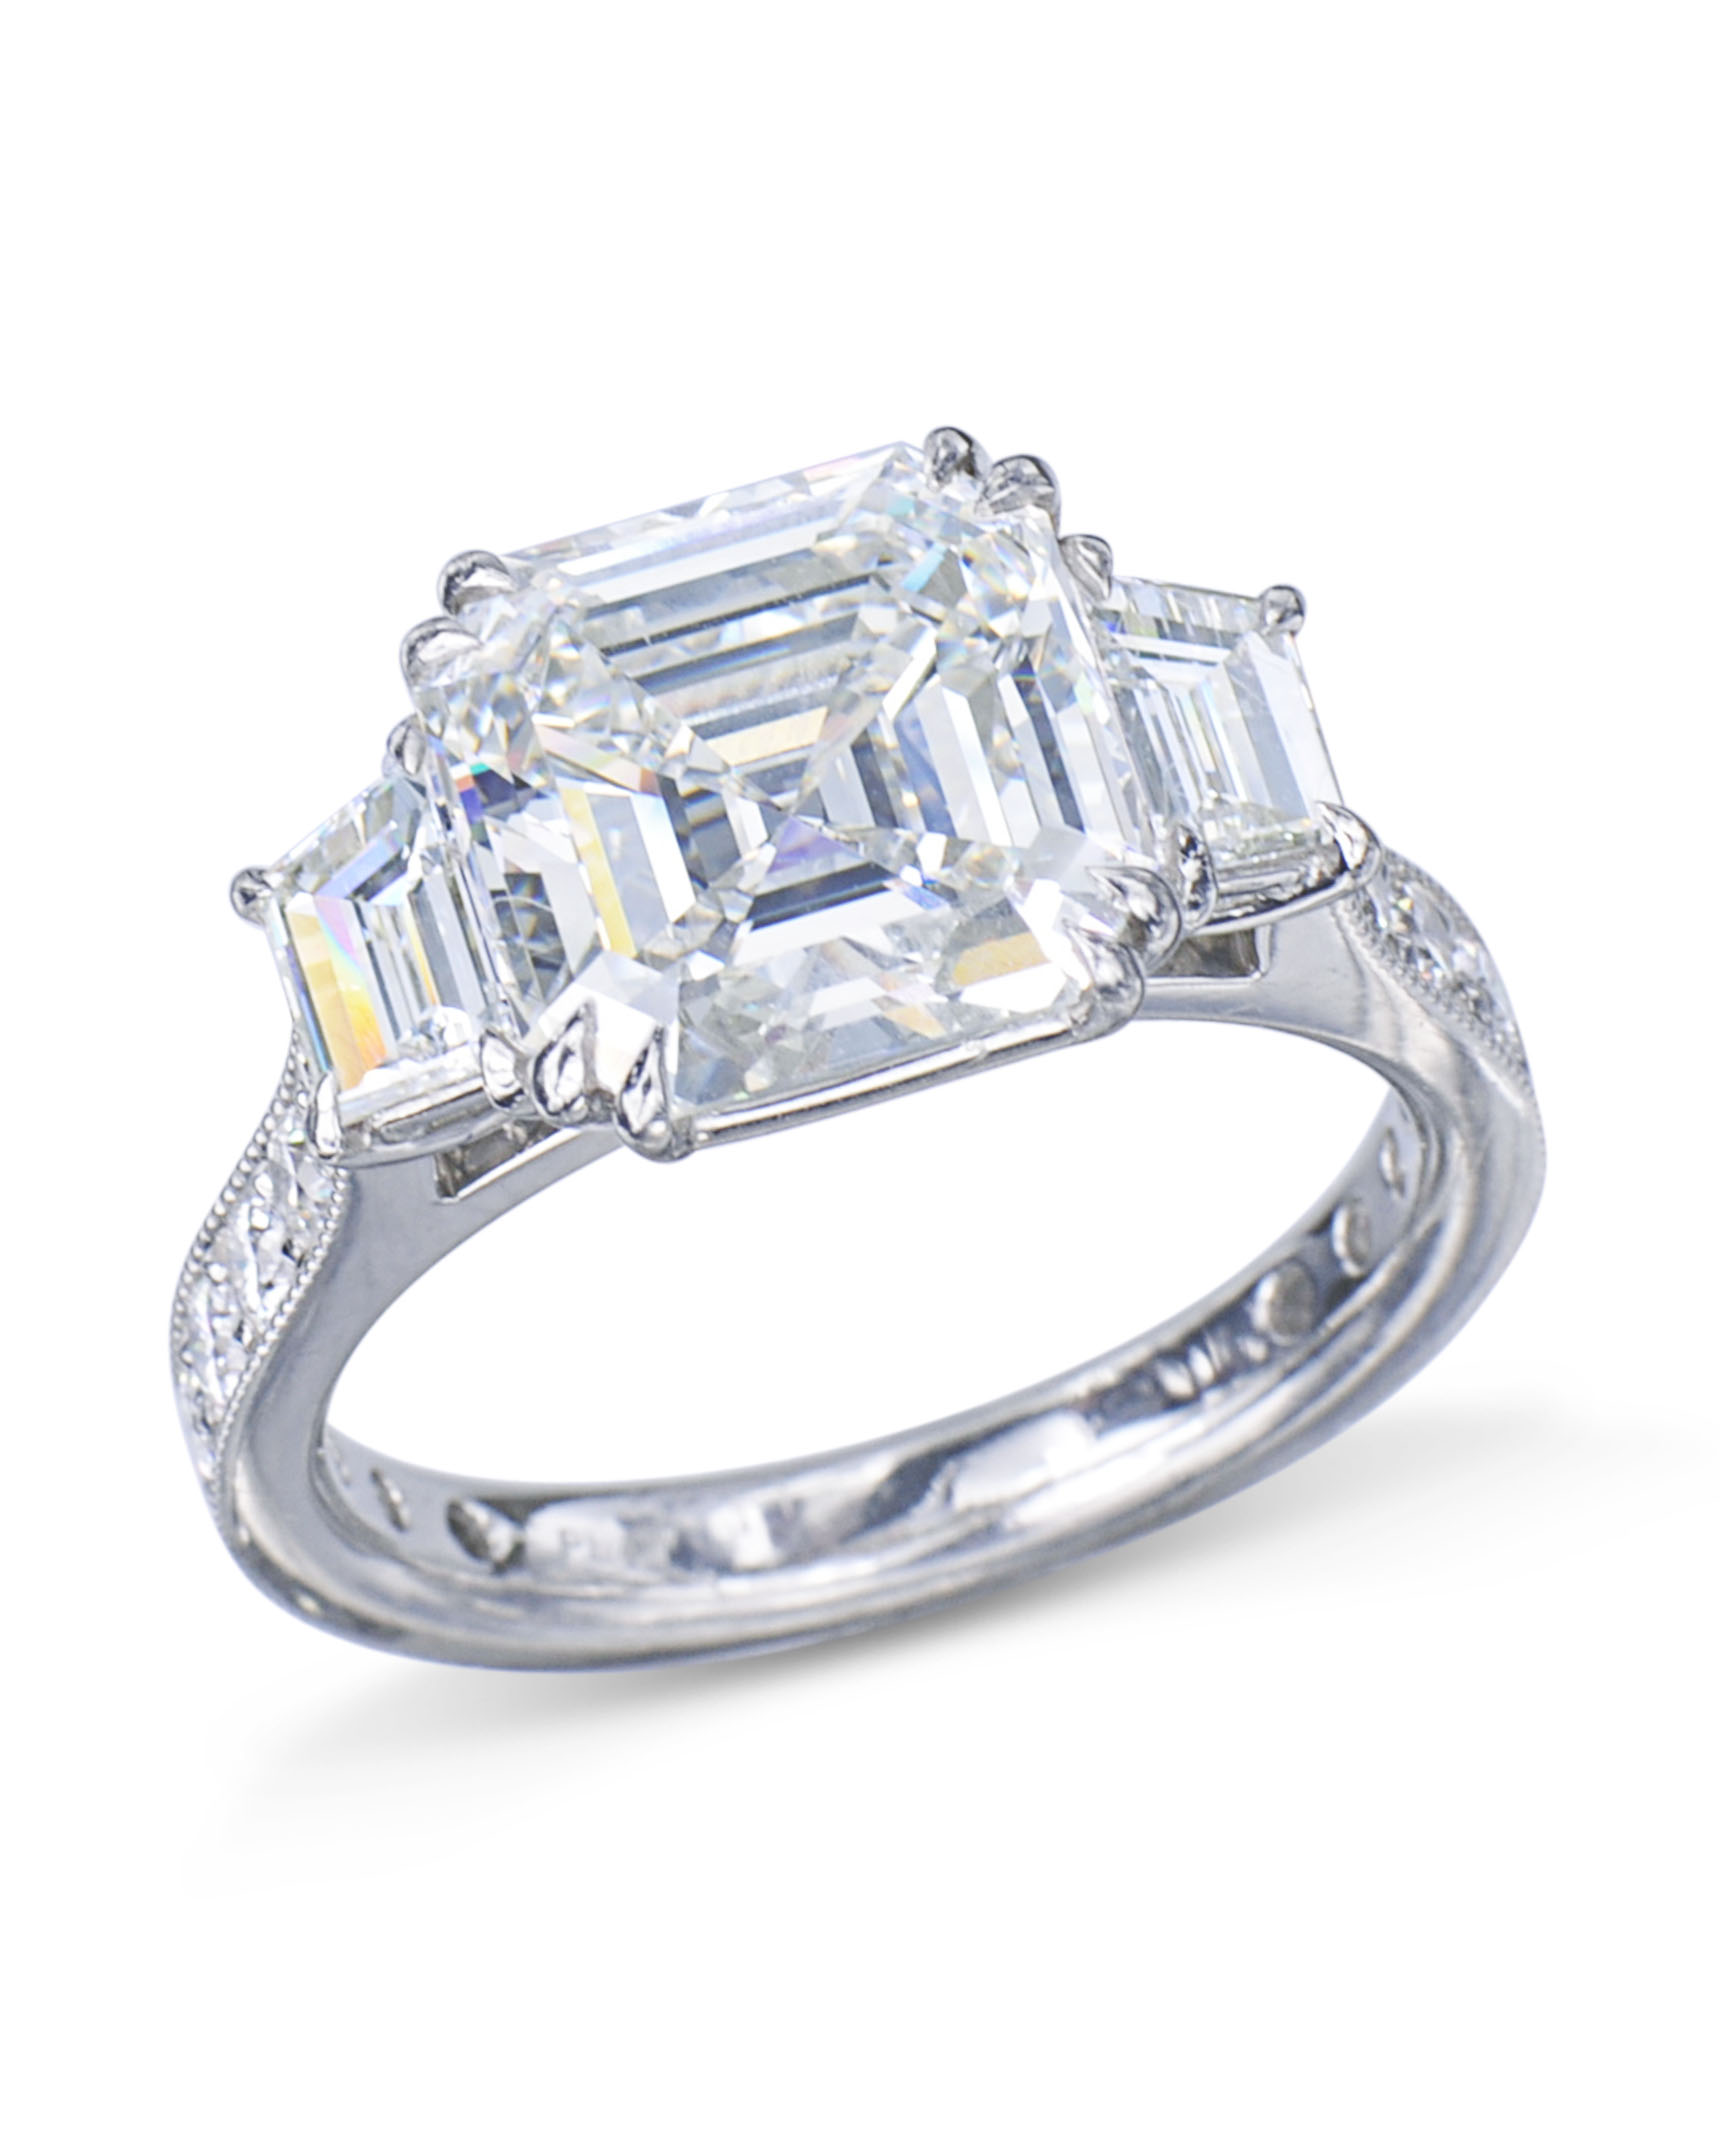 dt bling diamond sterling jewelry silver engagement cz canary yellow ring asscher ca simulated cut